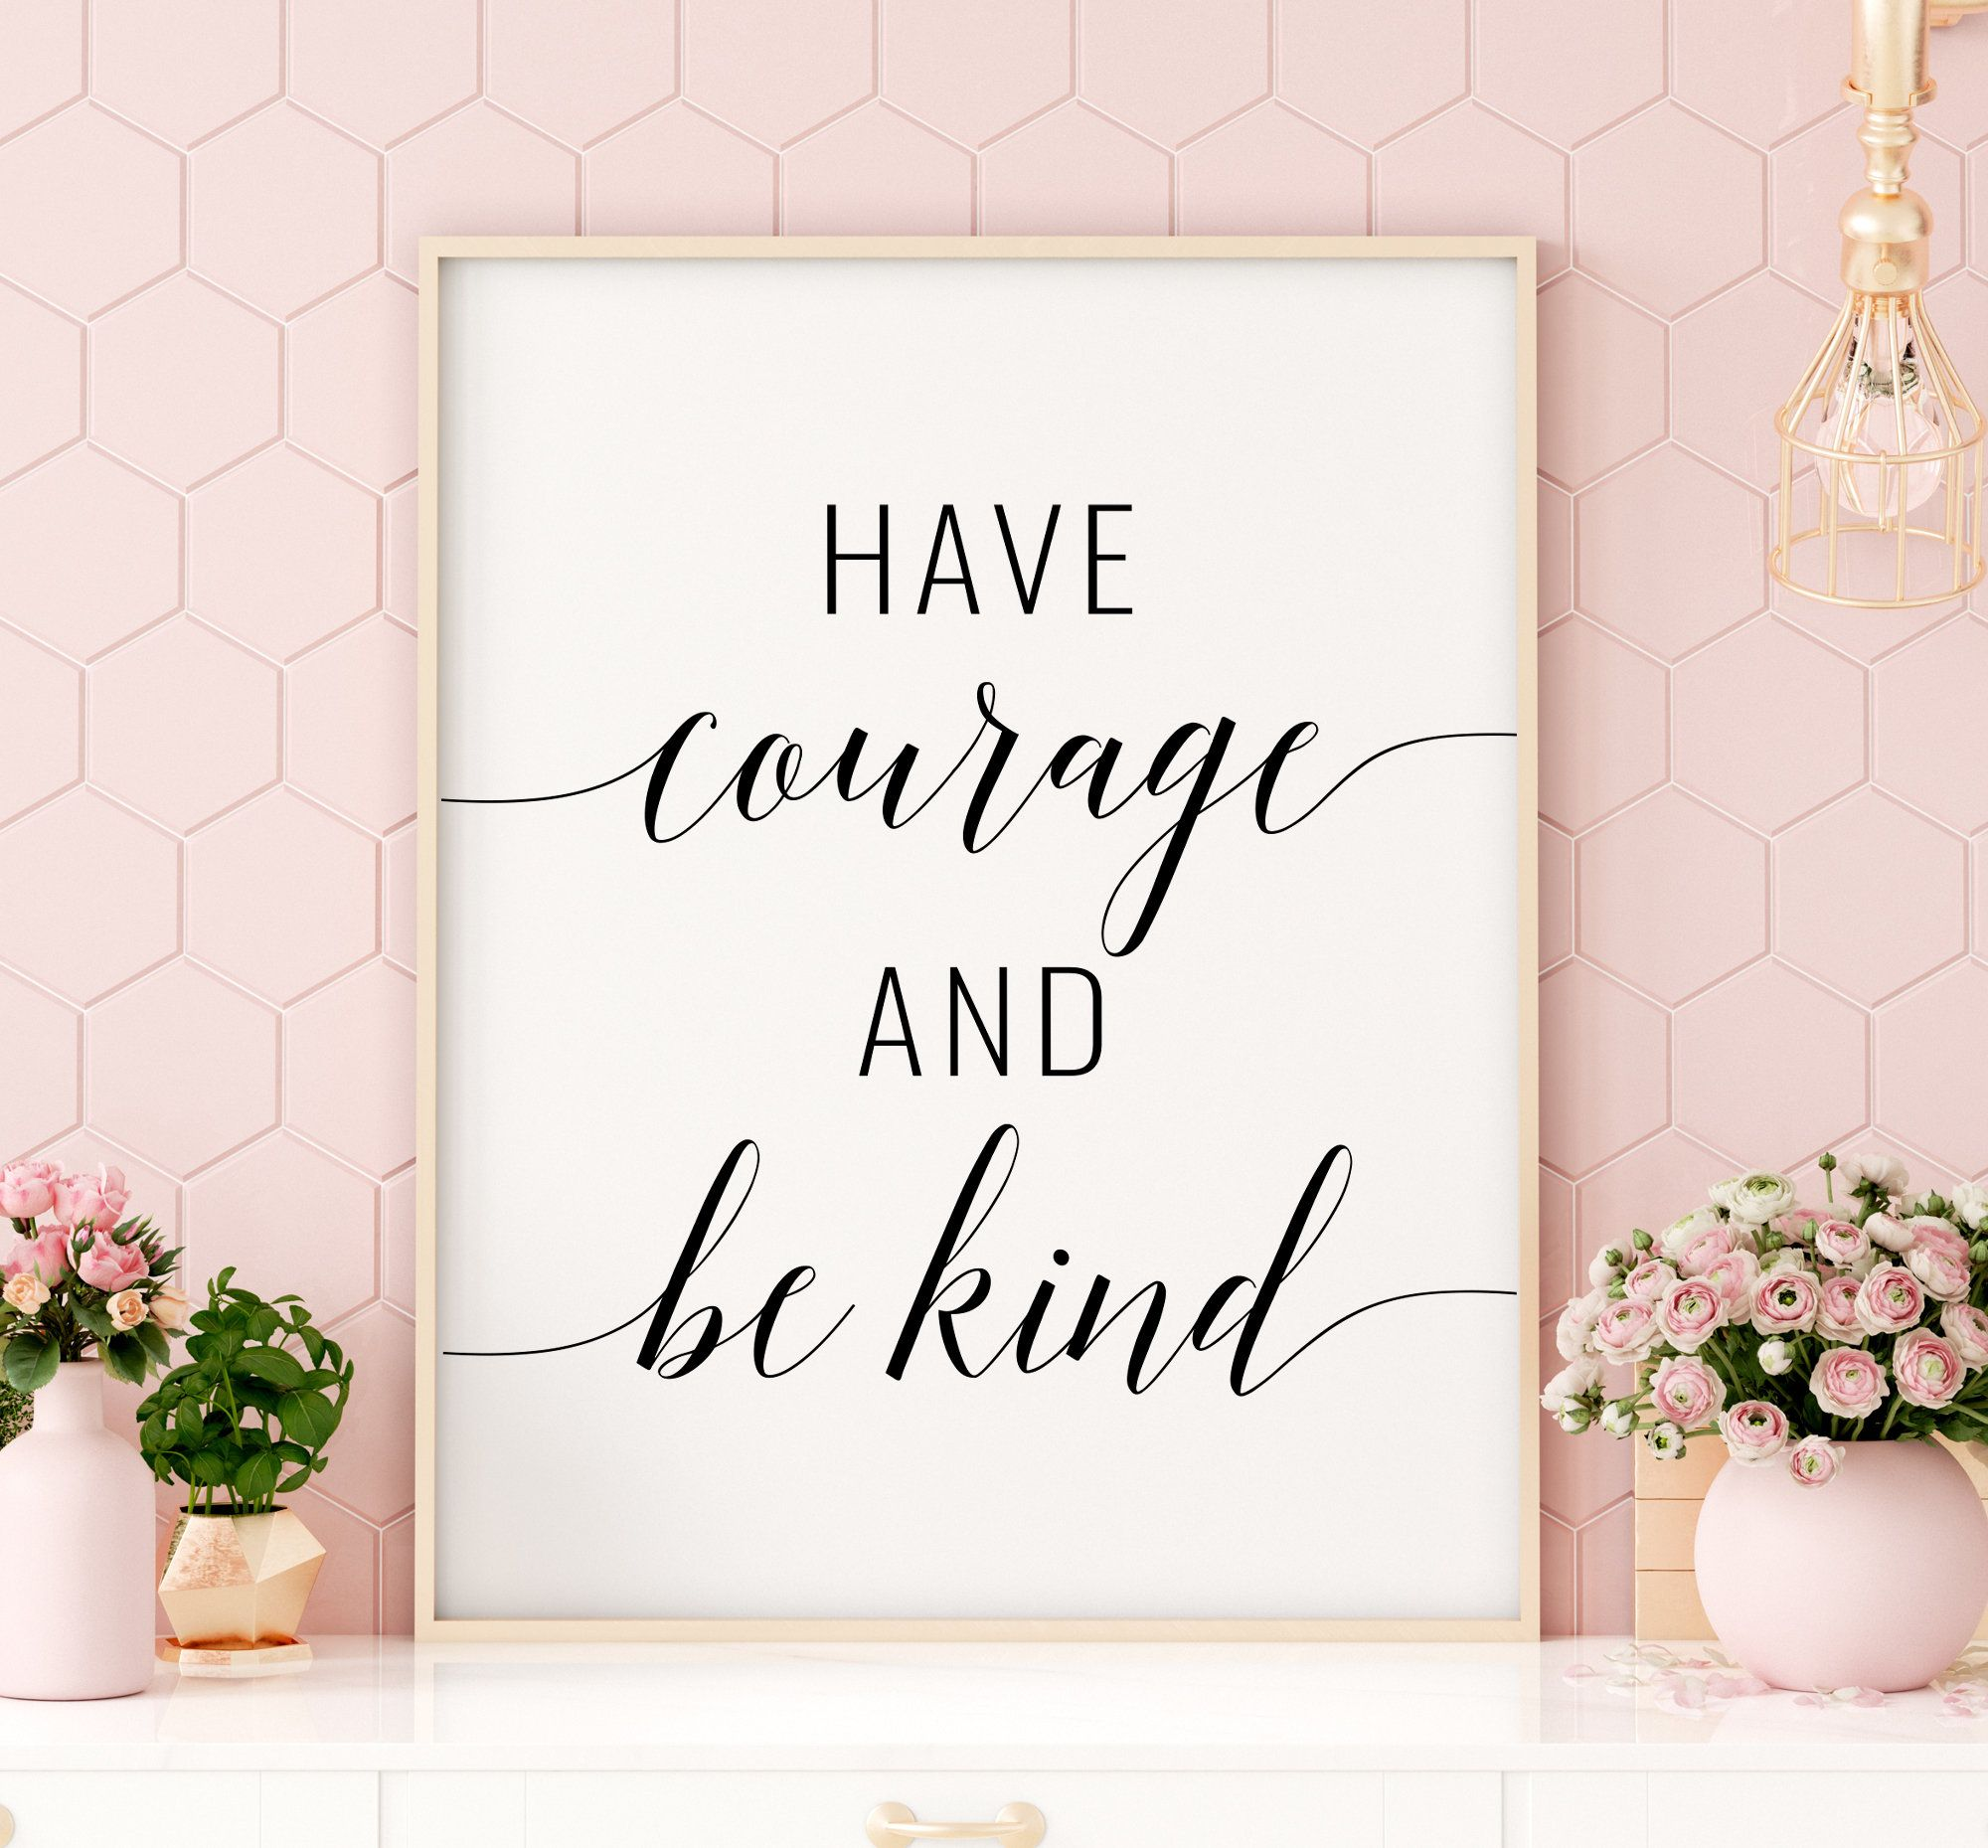 Have Courage And Be Kind Printable Art Inspirational Quote Etsy Wall Art Instant Download Printing Websites Printable Art